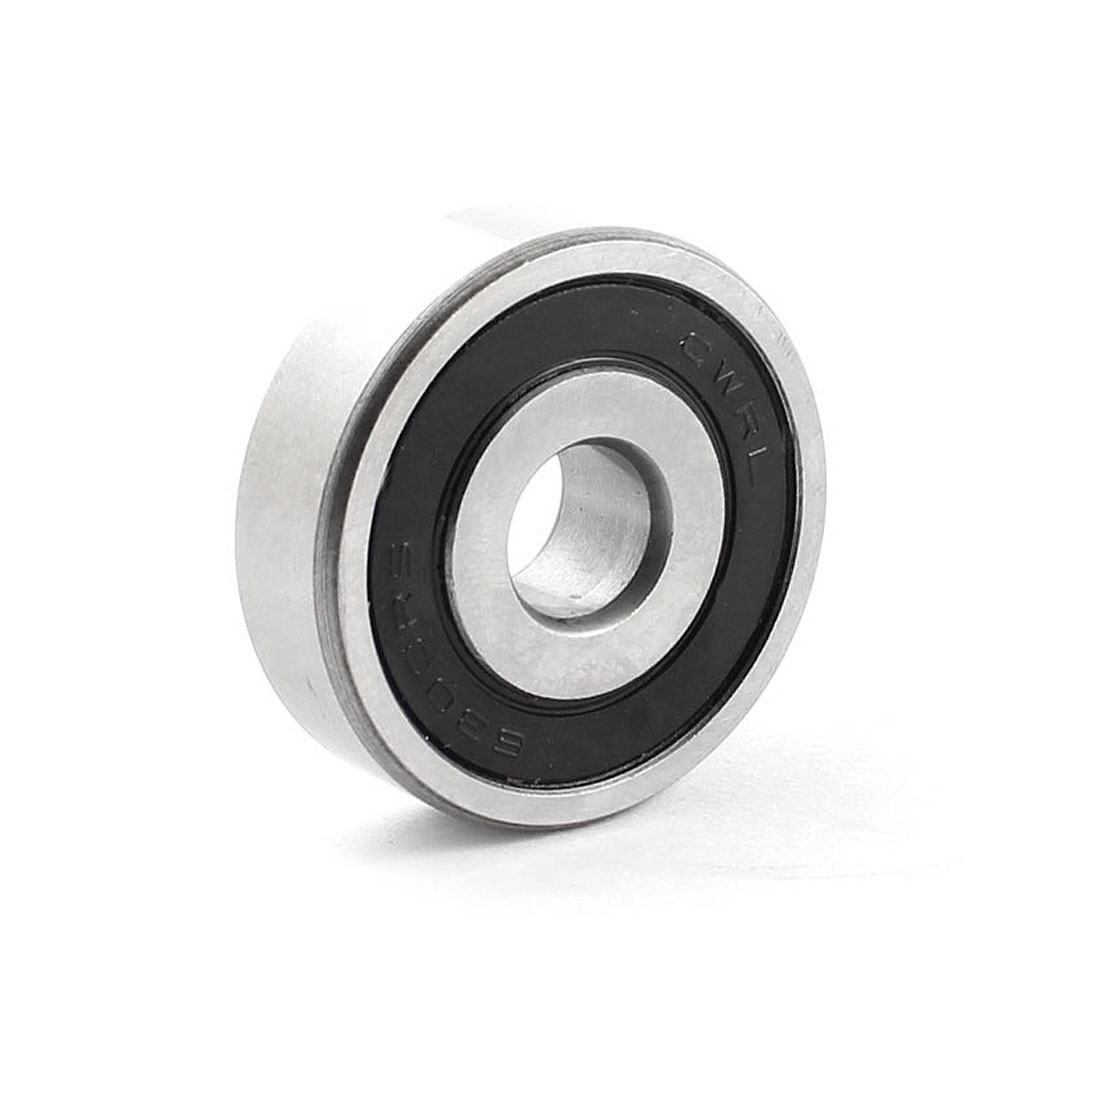 6300RS 10mmx35mmx11mm Single Row Rubber Shielded Sealed Radial Deep Groove Ball Bearing